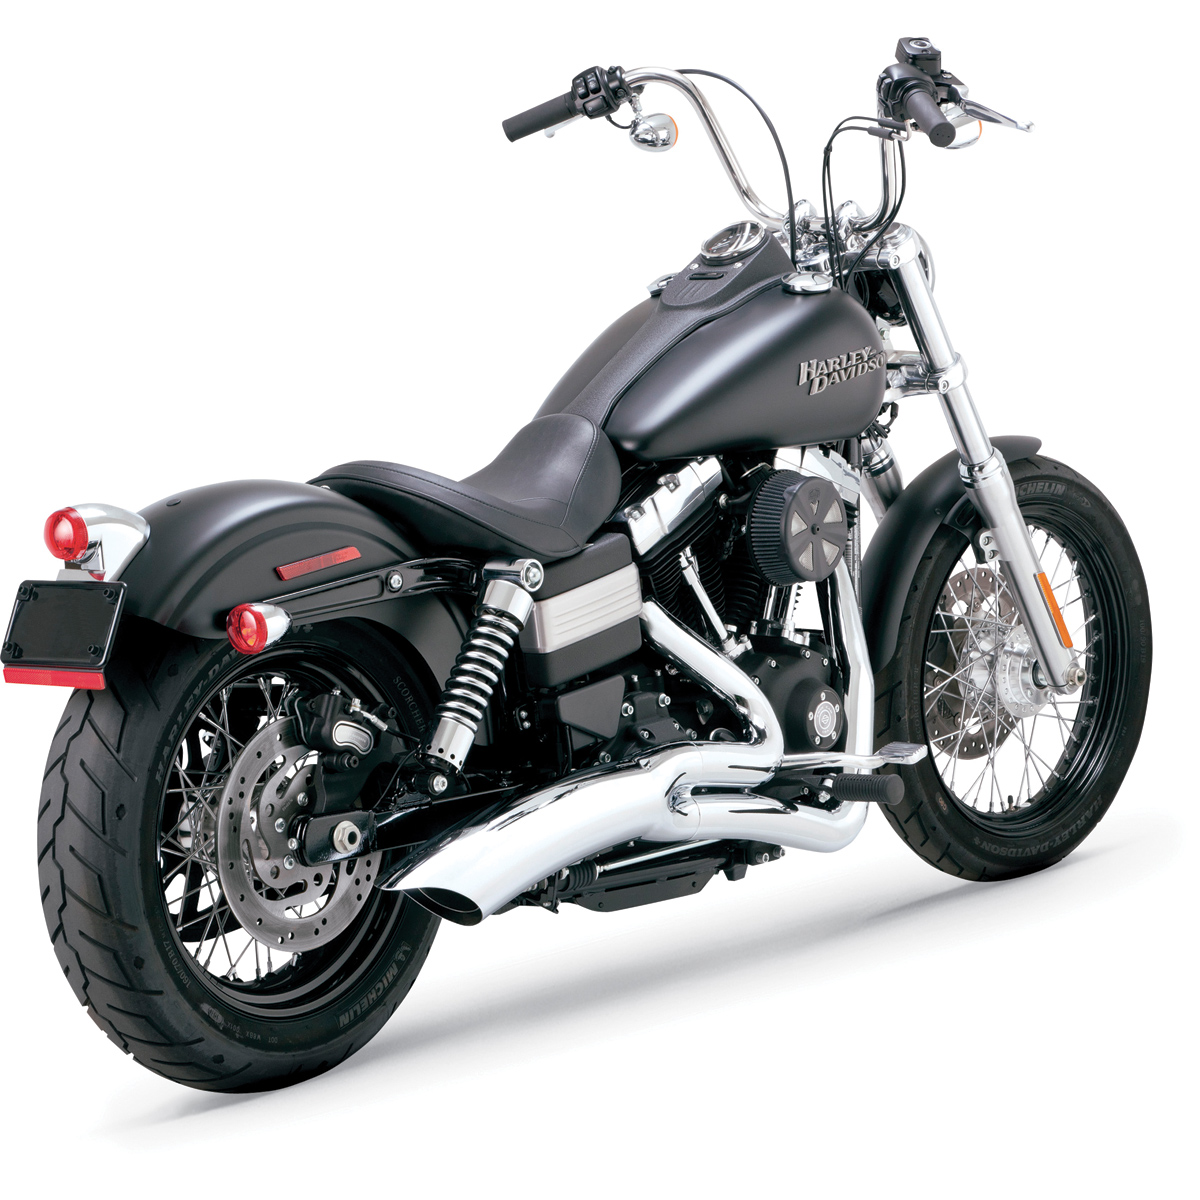 Motorcycle Tires Save Big On Tires Jp Cycles | Autos Post